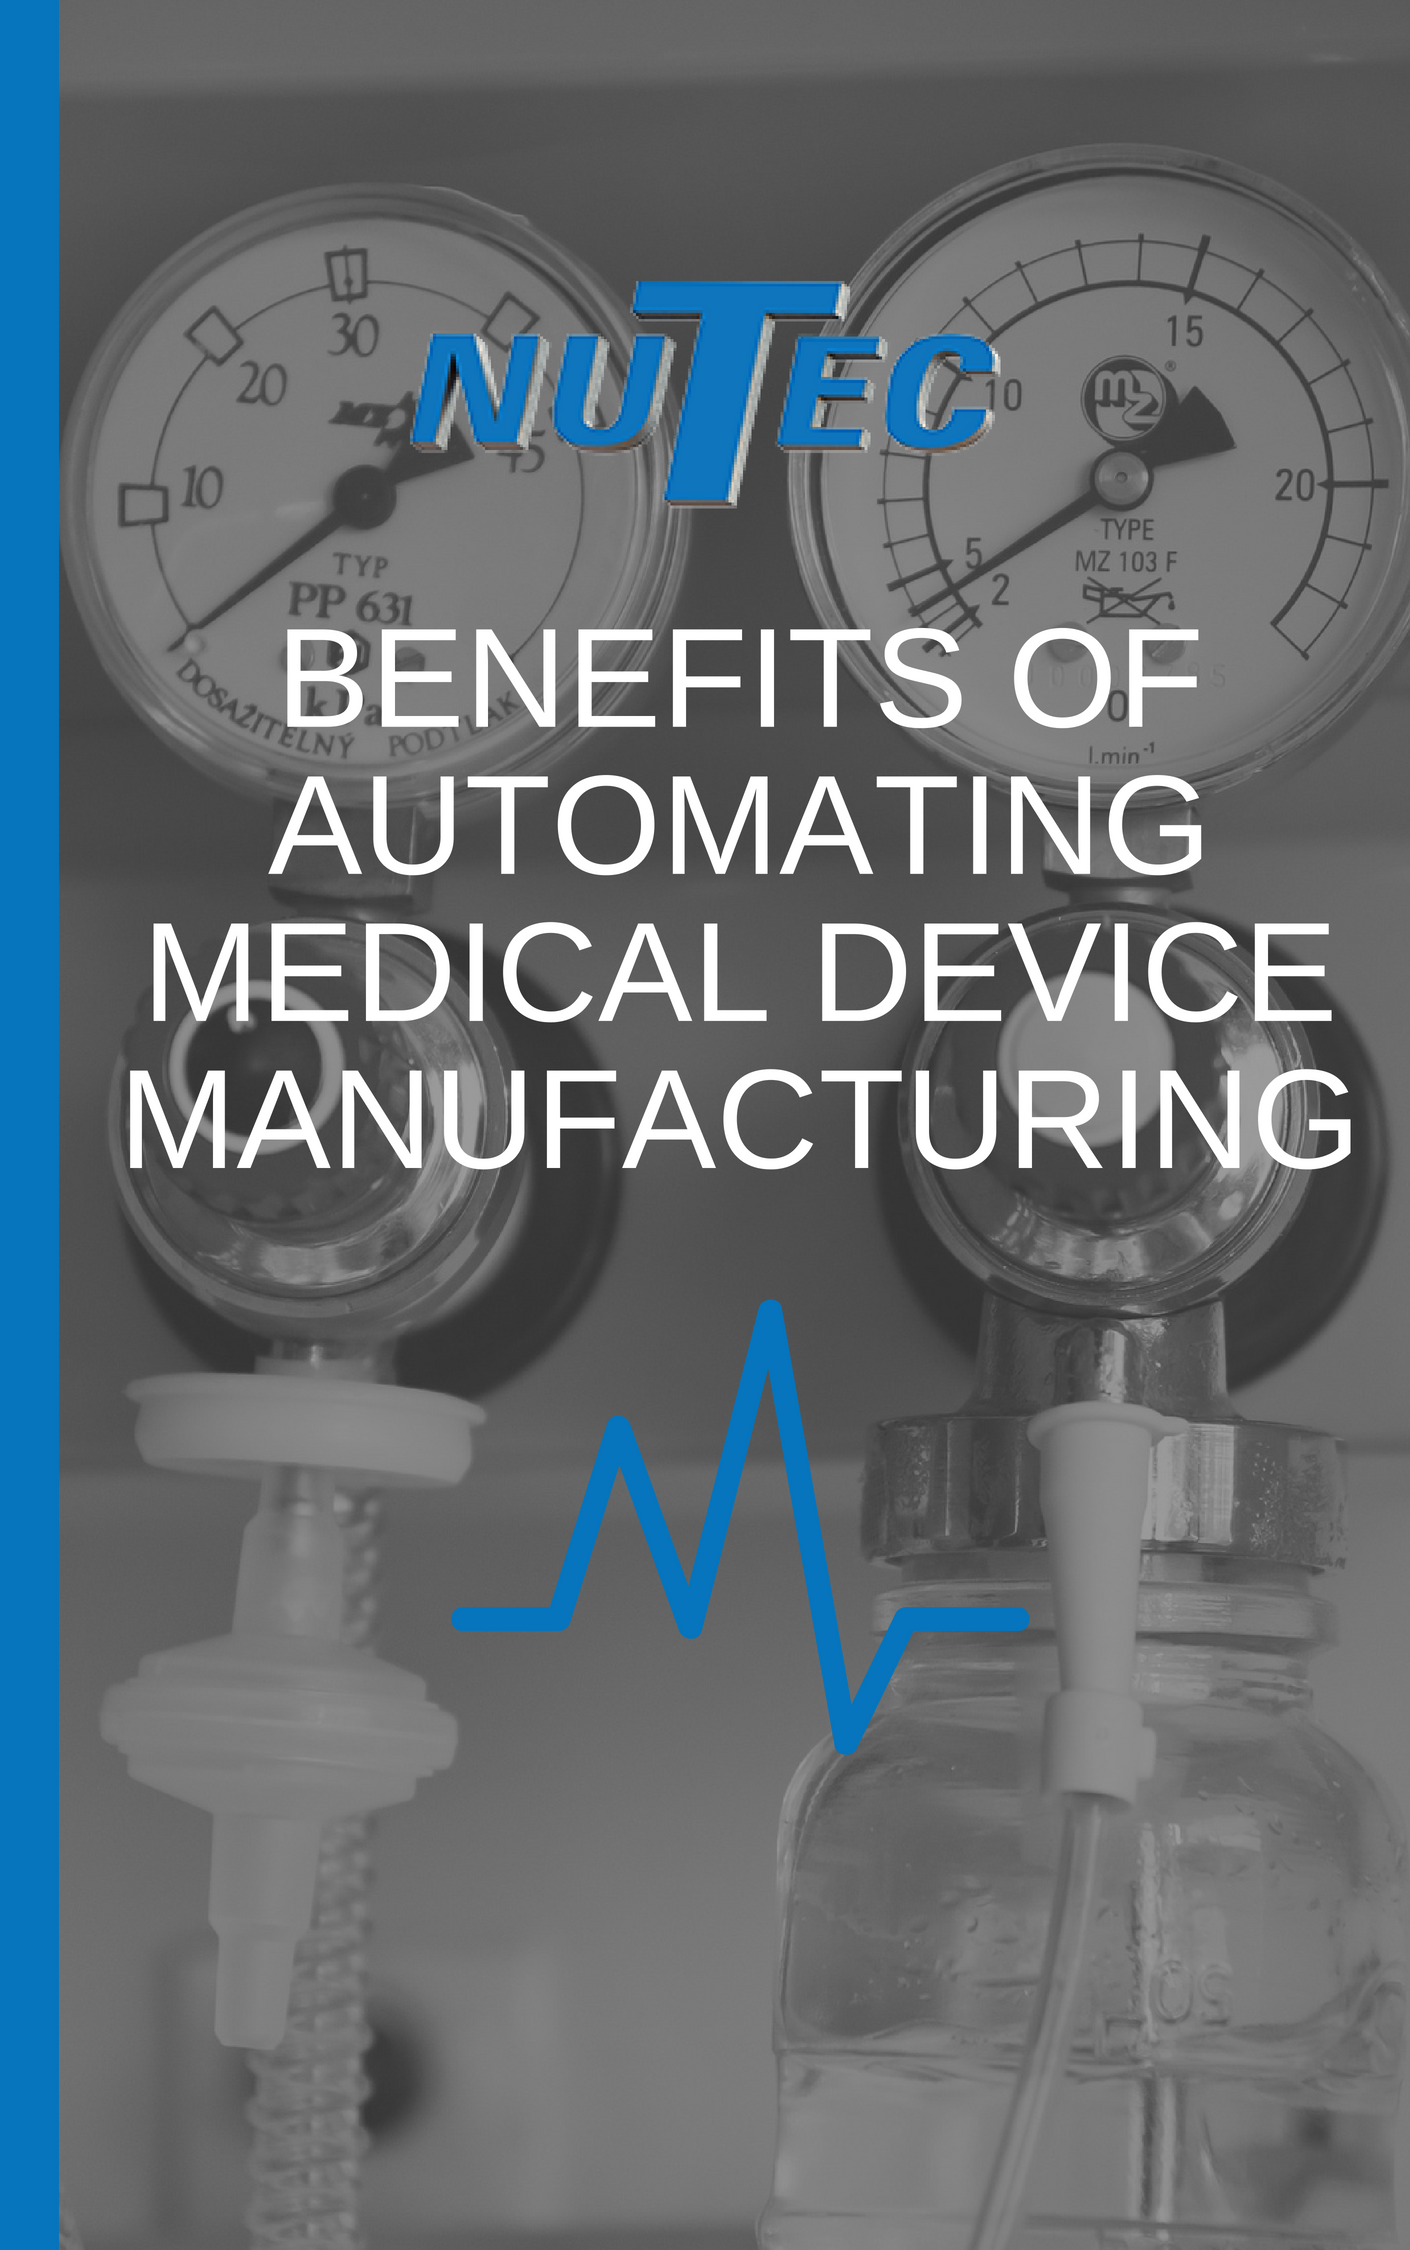 Benefits of Automating Medical Device Manufacturing-1